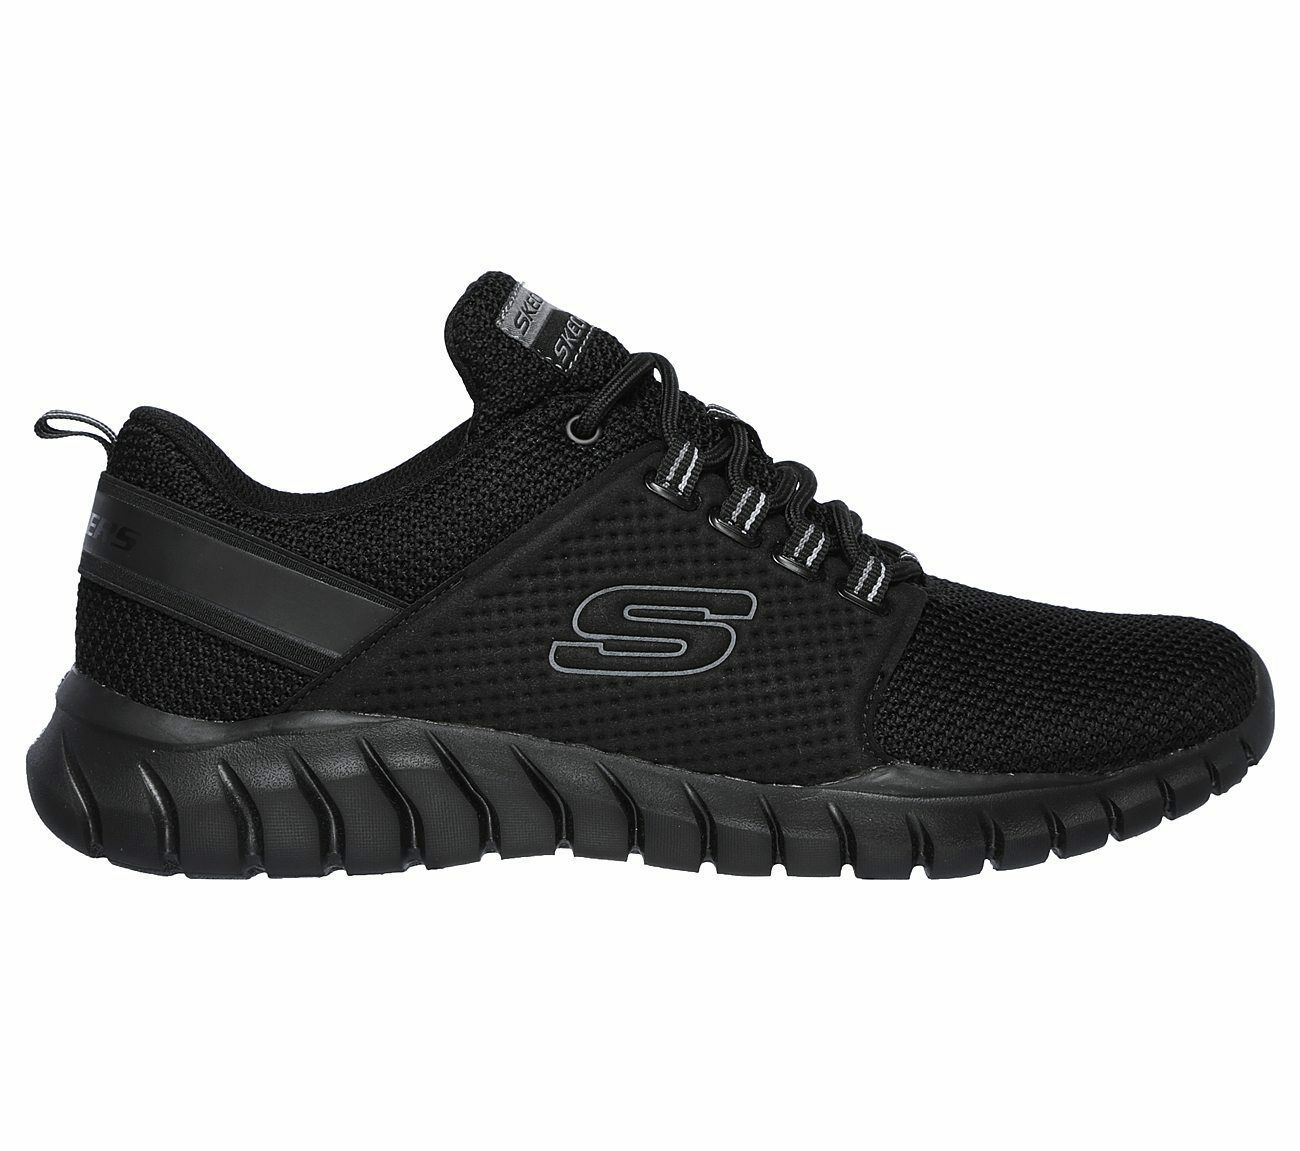 52821 Wide Fit Black Skechers shoe Men Memory Foam Sport Comfort Train Walk Mesh image 2